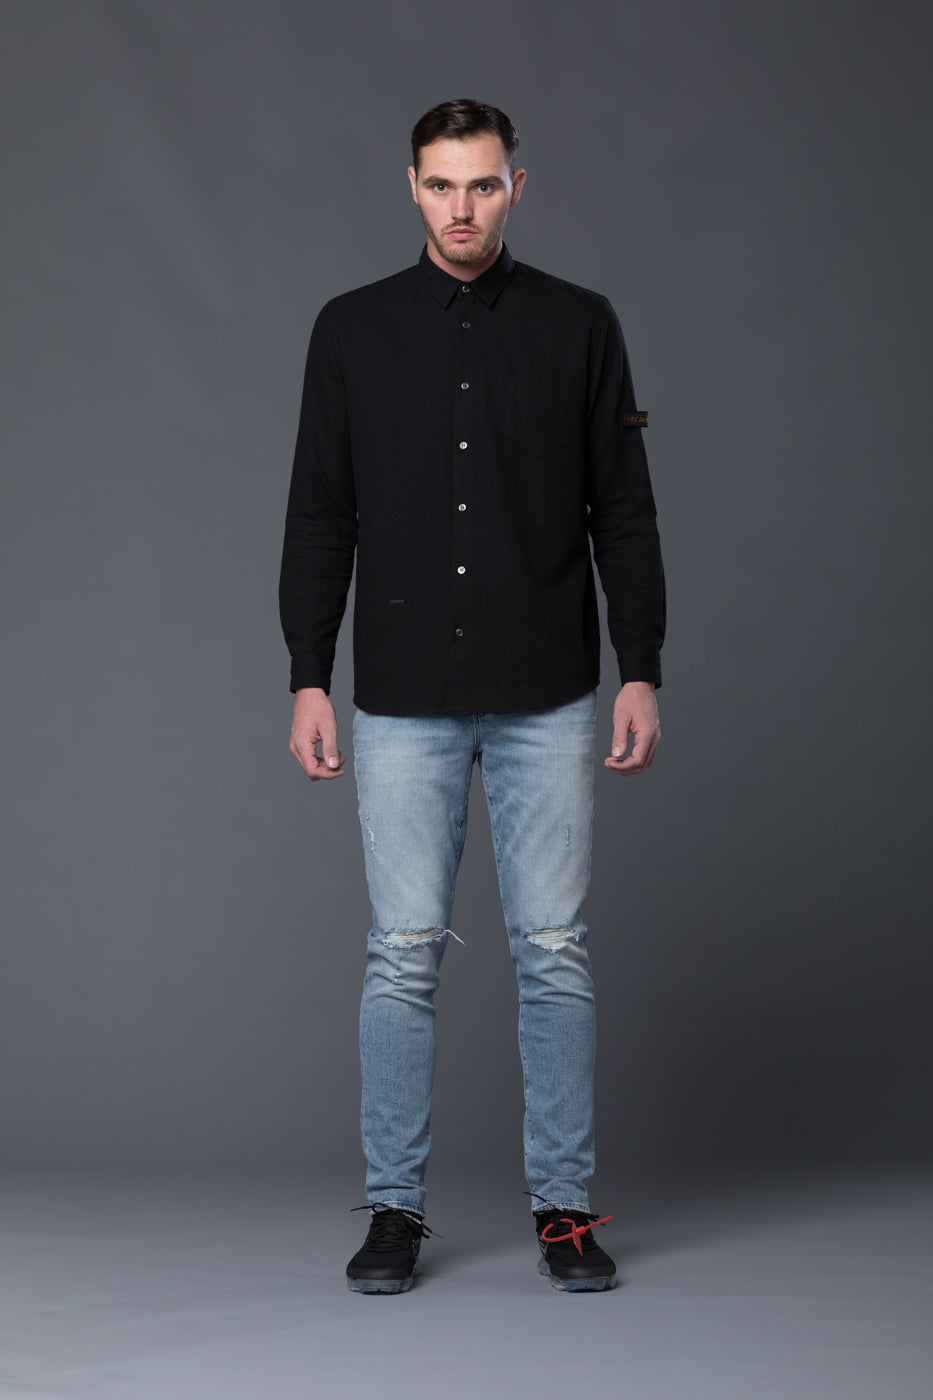 Robert Geller Black Shirt